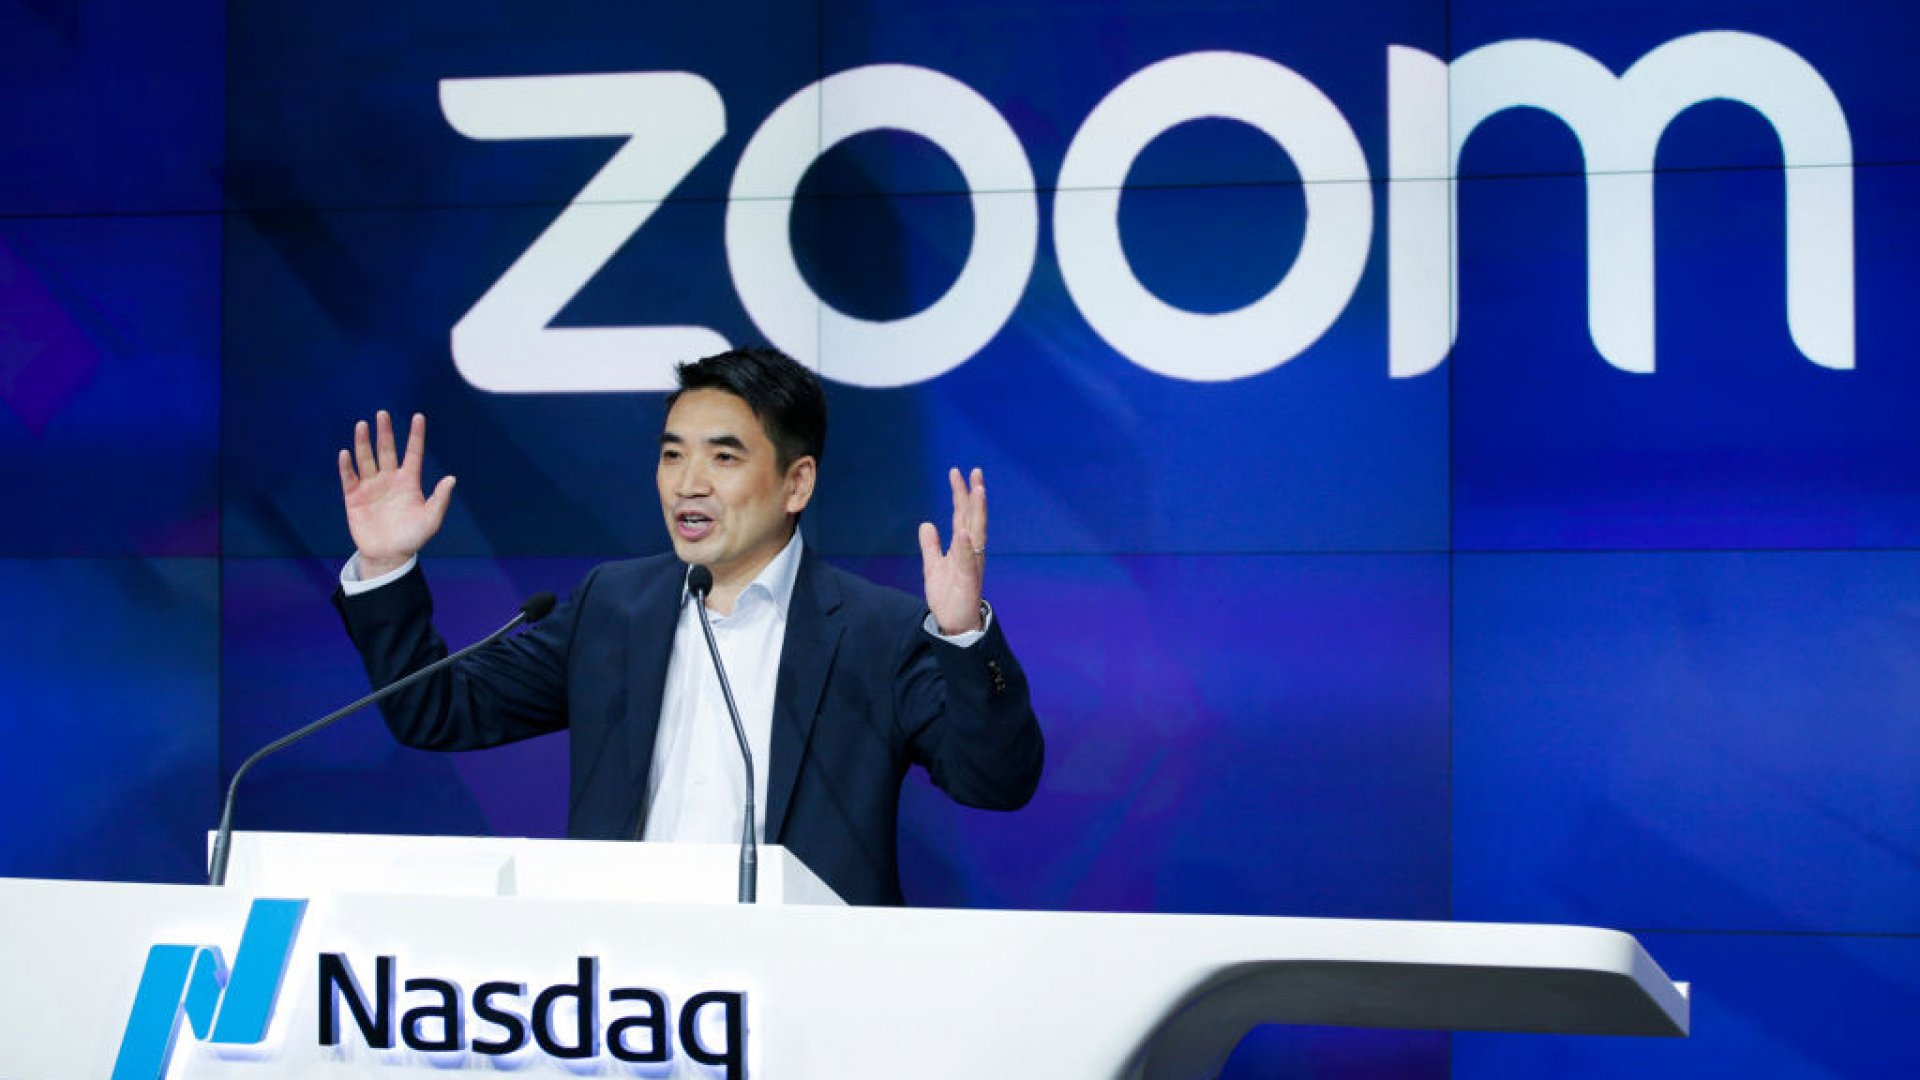 Zoom founder Eric Yuan speaks before the Nasdaq opening bell ceremony.